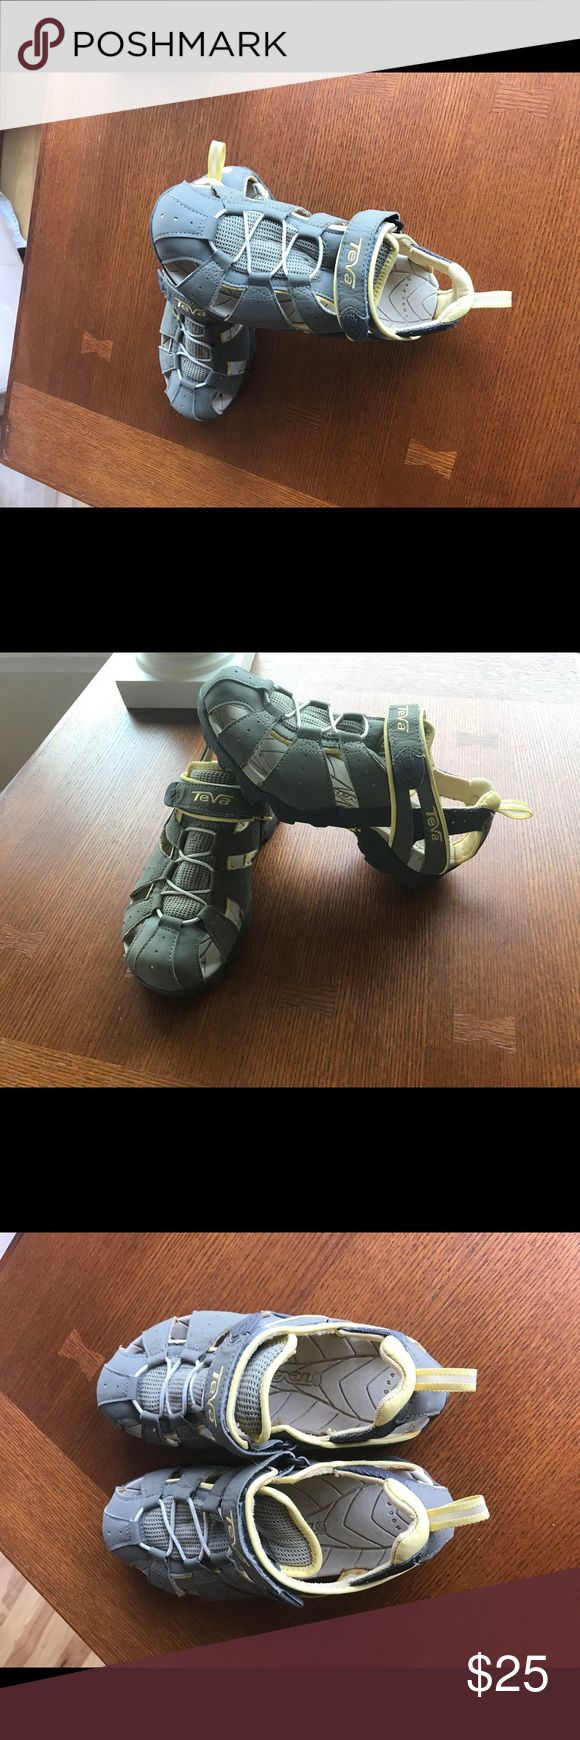 Teva water/hiking shoe Teva water shoe in good condition only worn a few times very clean except for one spot on the heel that is listed in the picture Teva Shoes